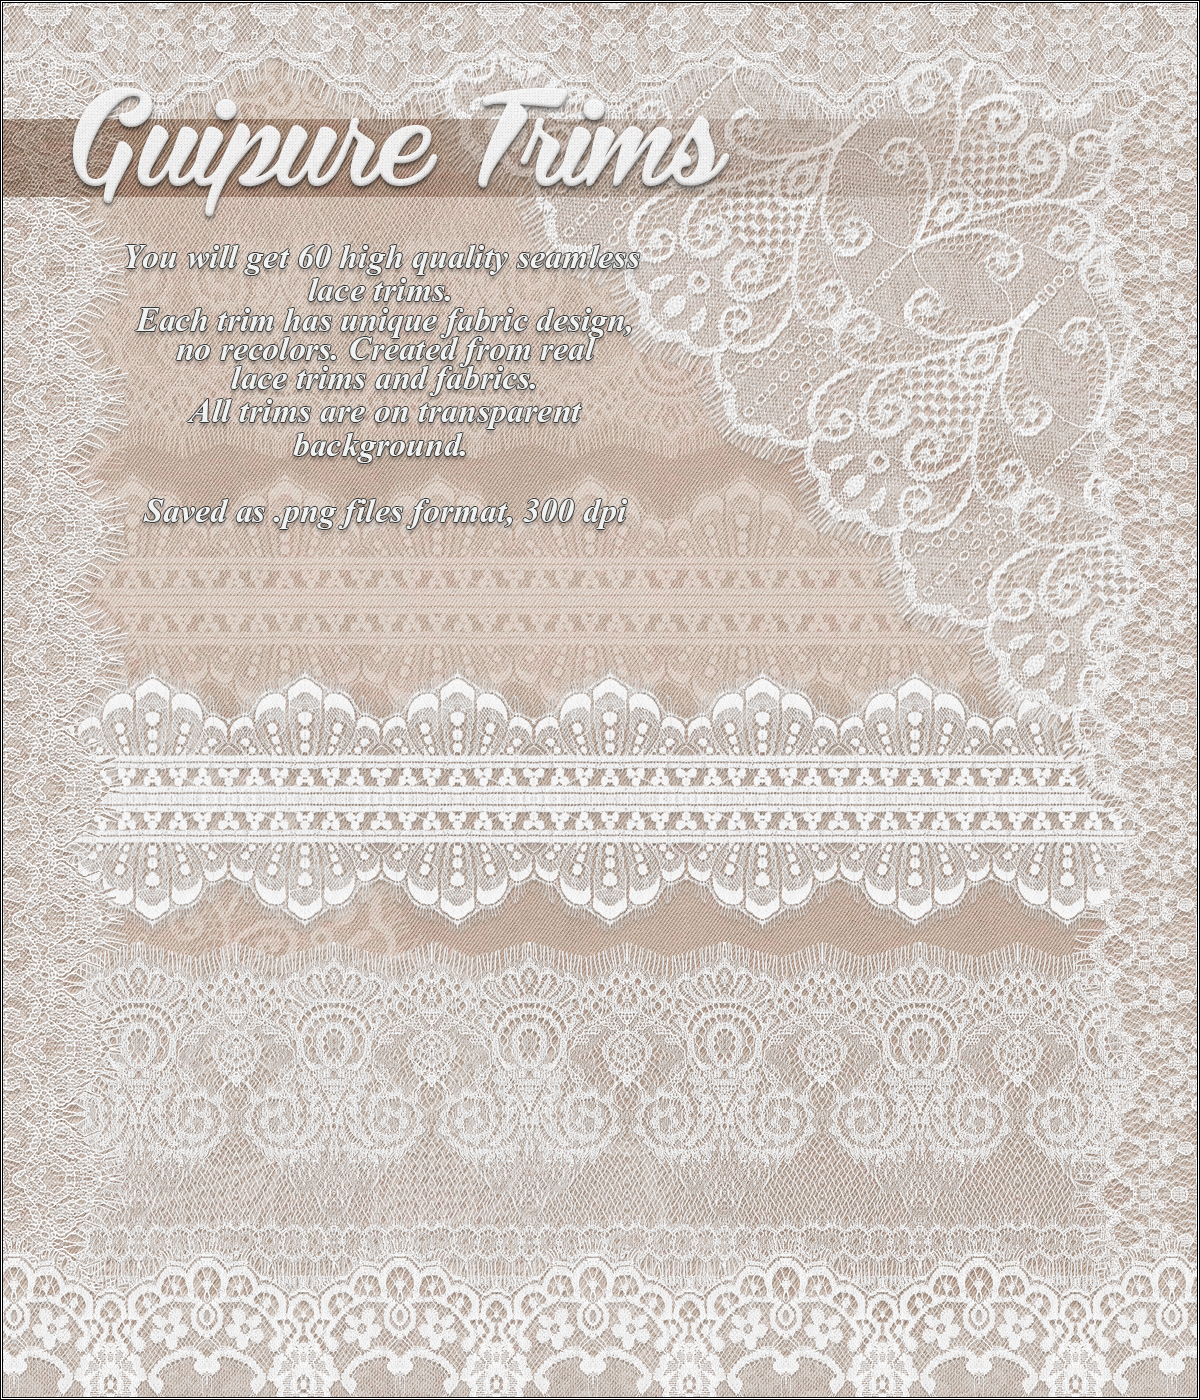 Guipure Trims